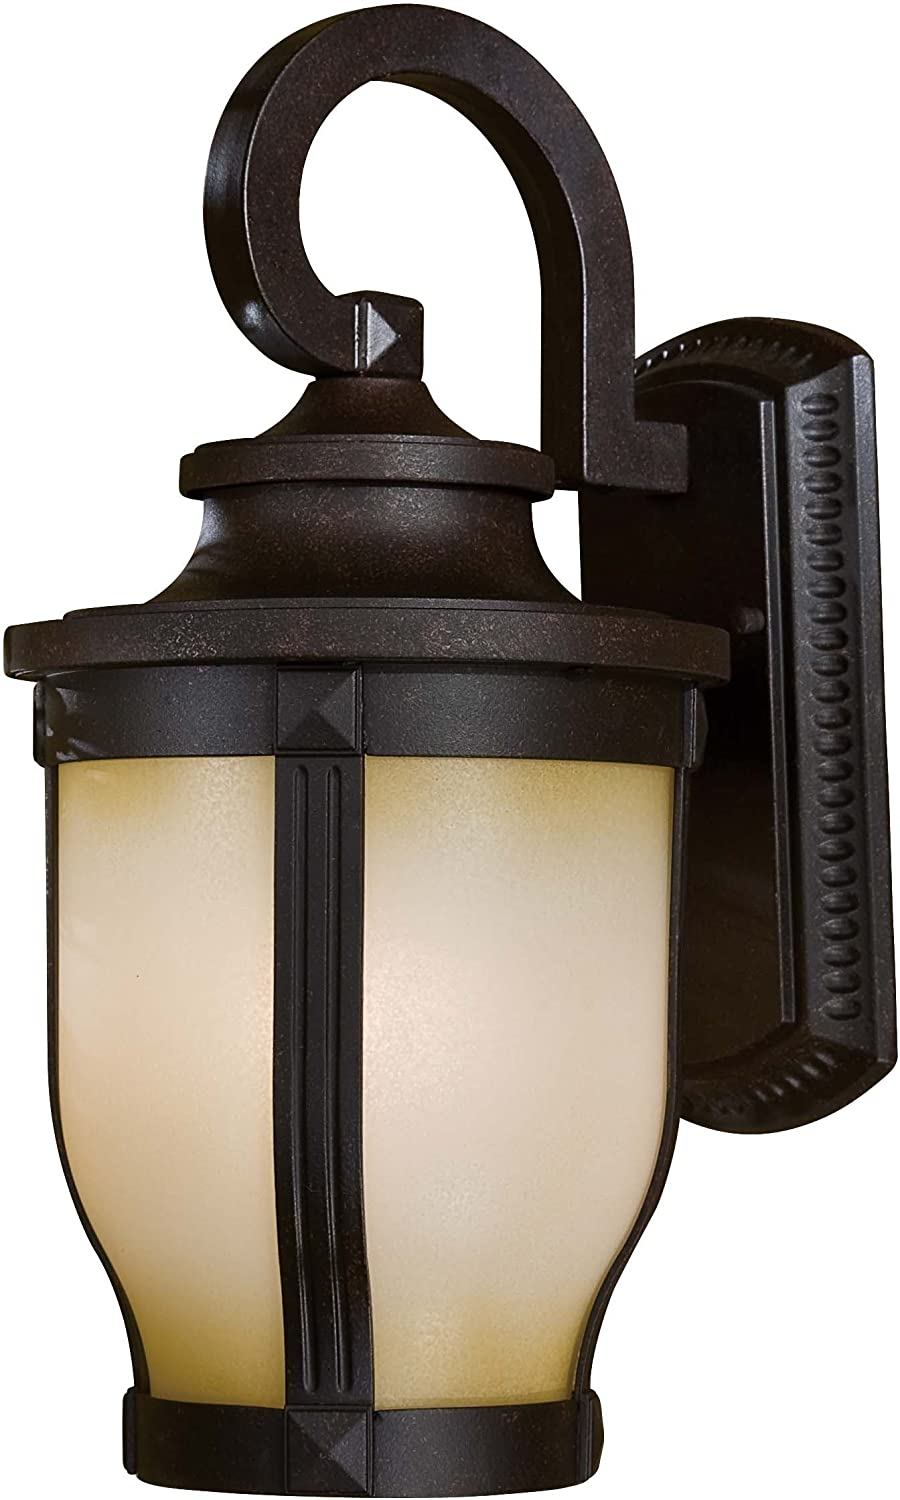 Minka outdoor 8762 166 pl merrimack outdoor wall sconce lighting minka outdoor 8762 166 pl merrimack outdoor wall sconce lighting 13 watts carona bronze amazon aloadofball Choice Image